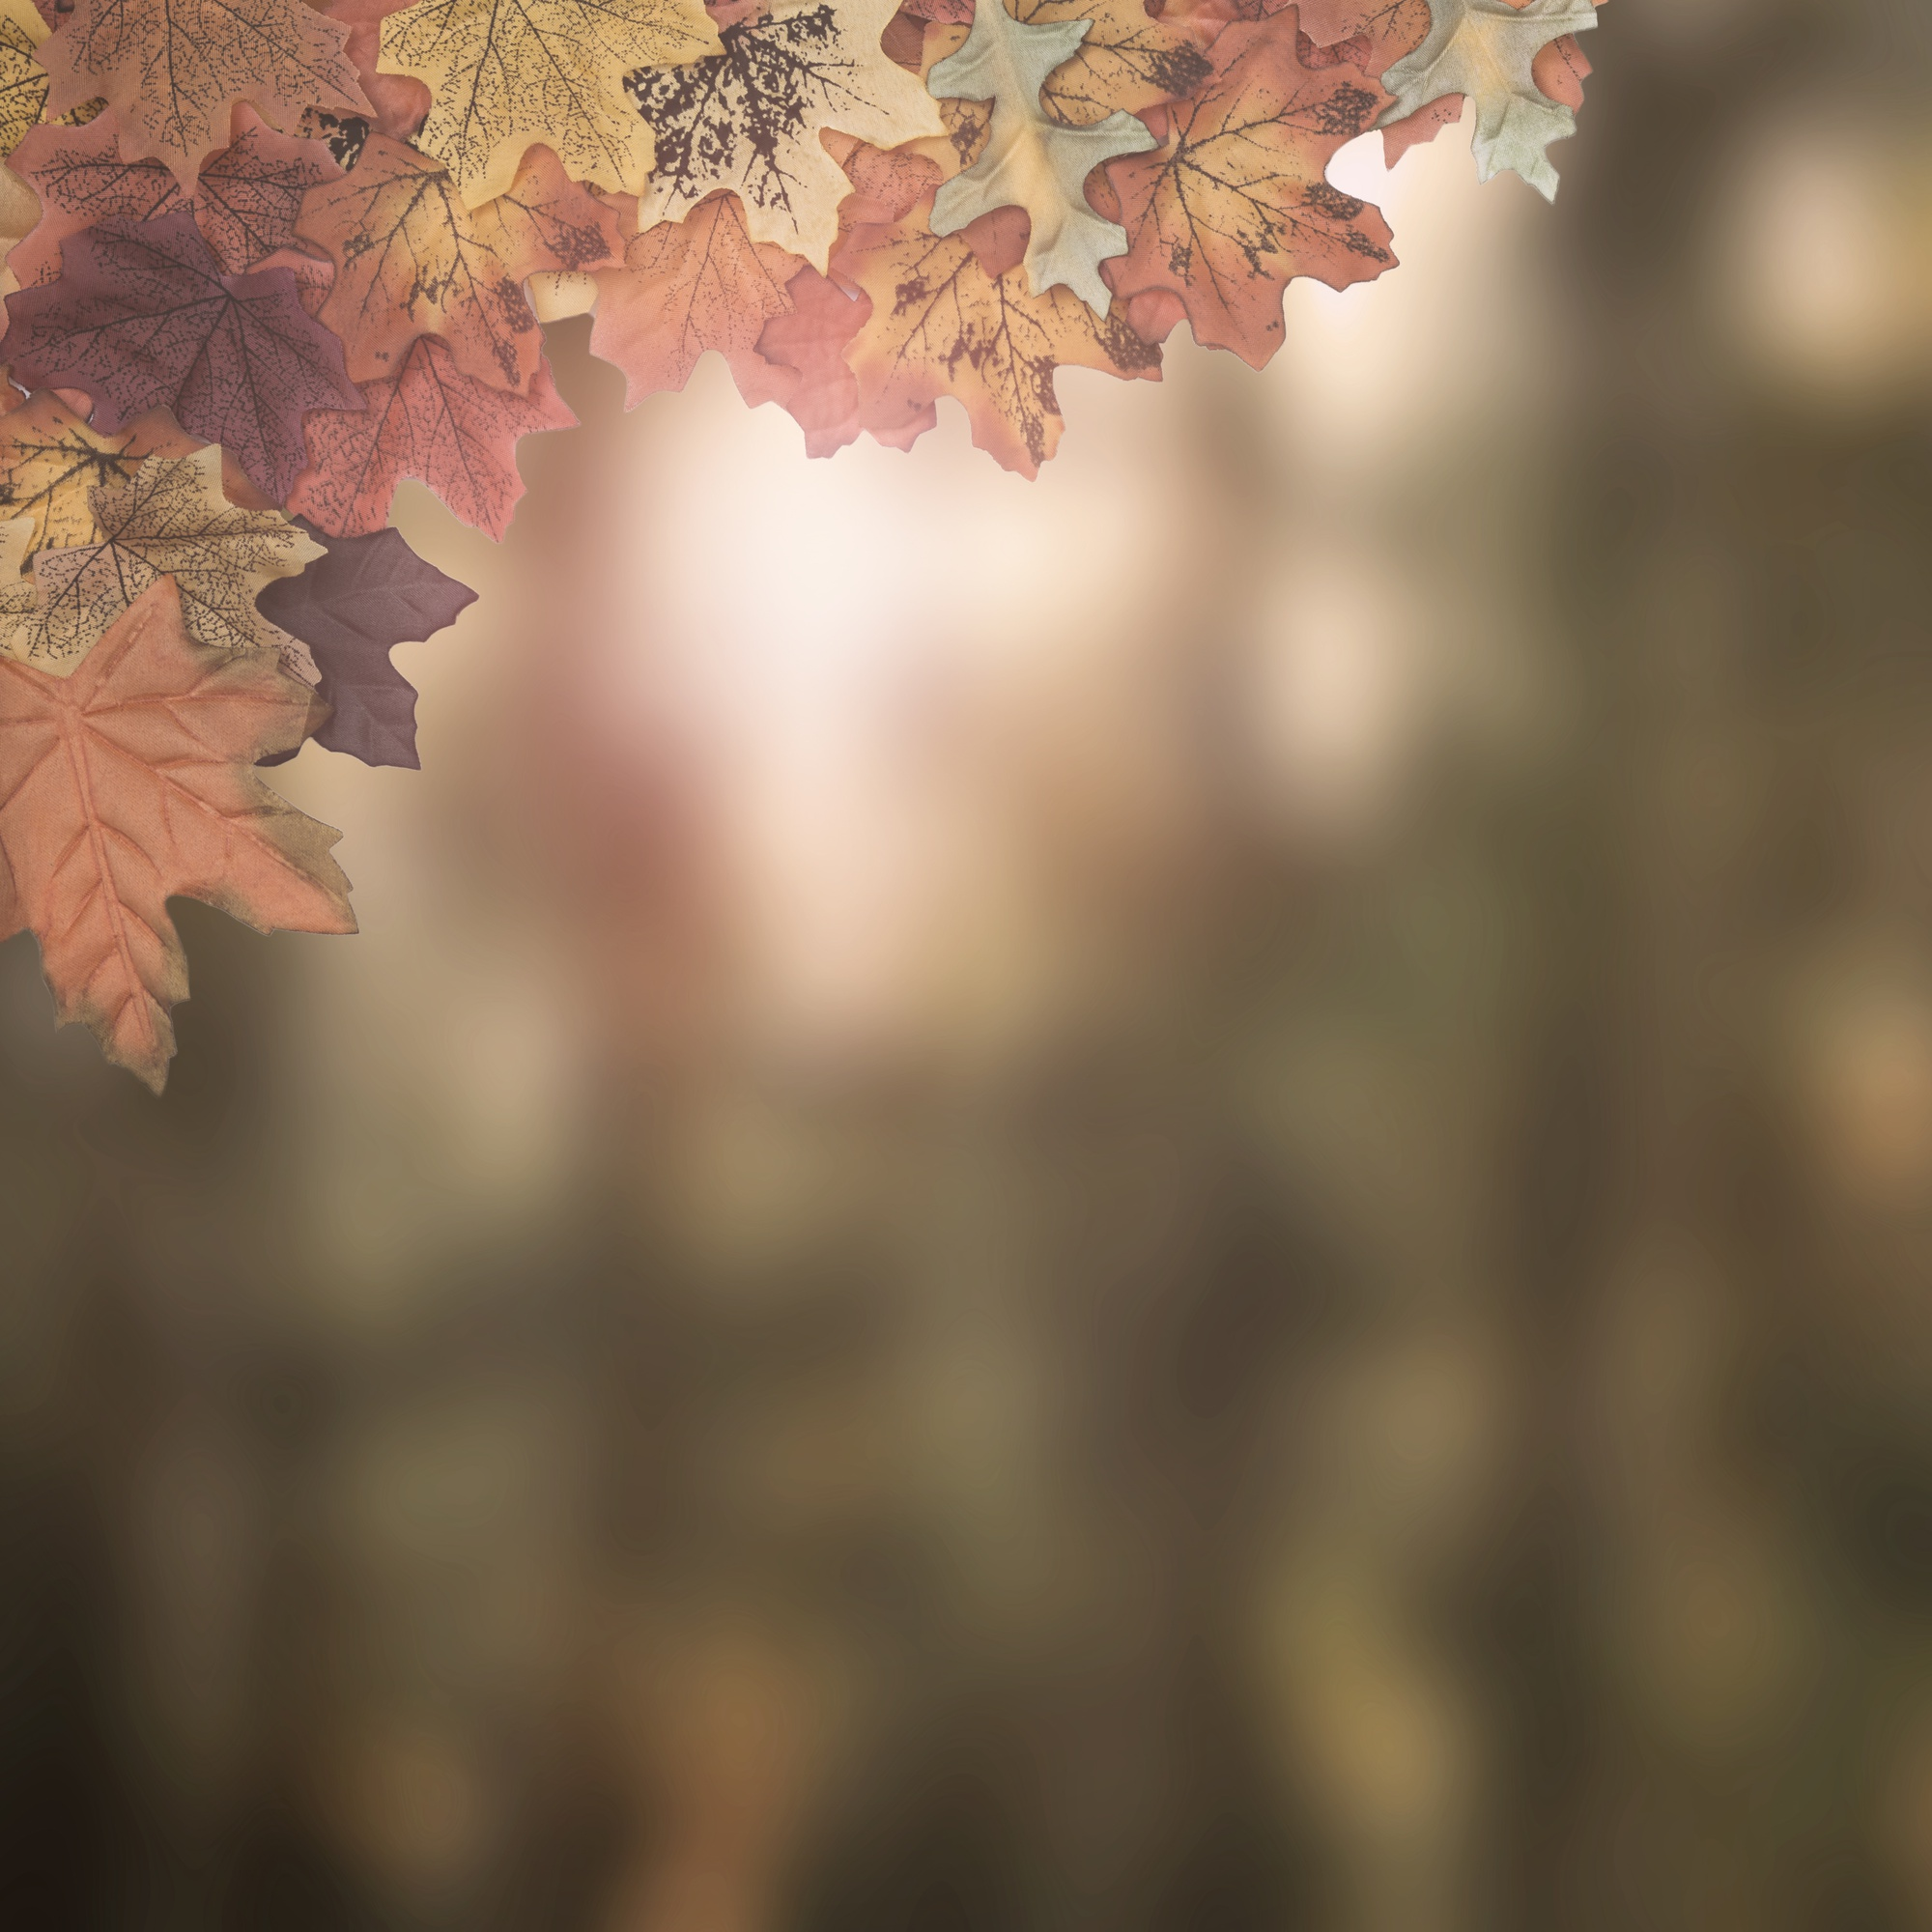 Autumn leaves frame designed on blurry background